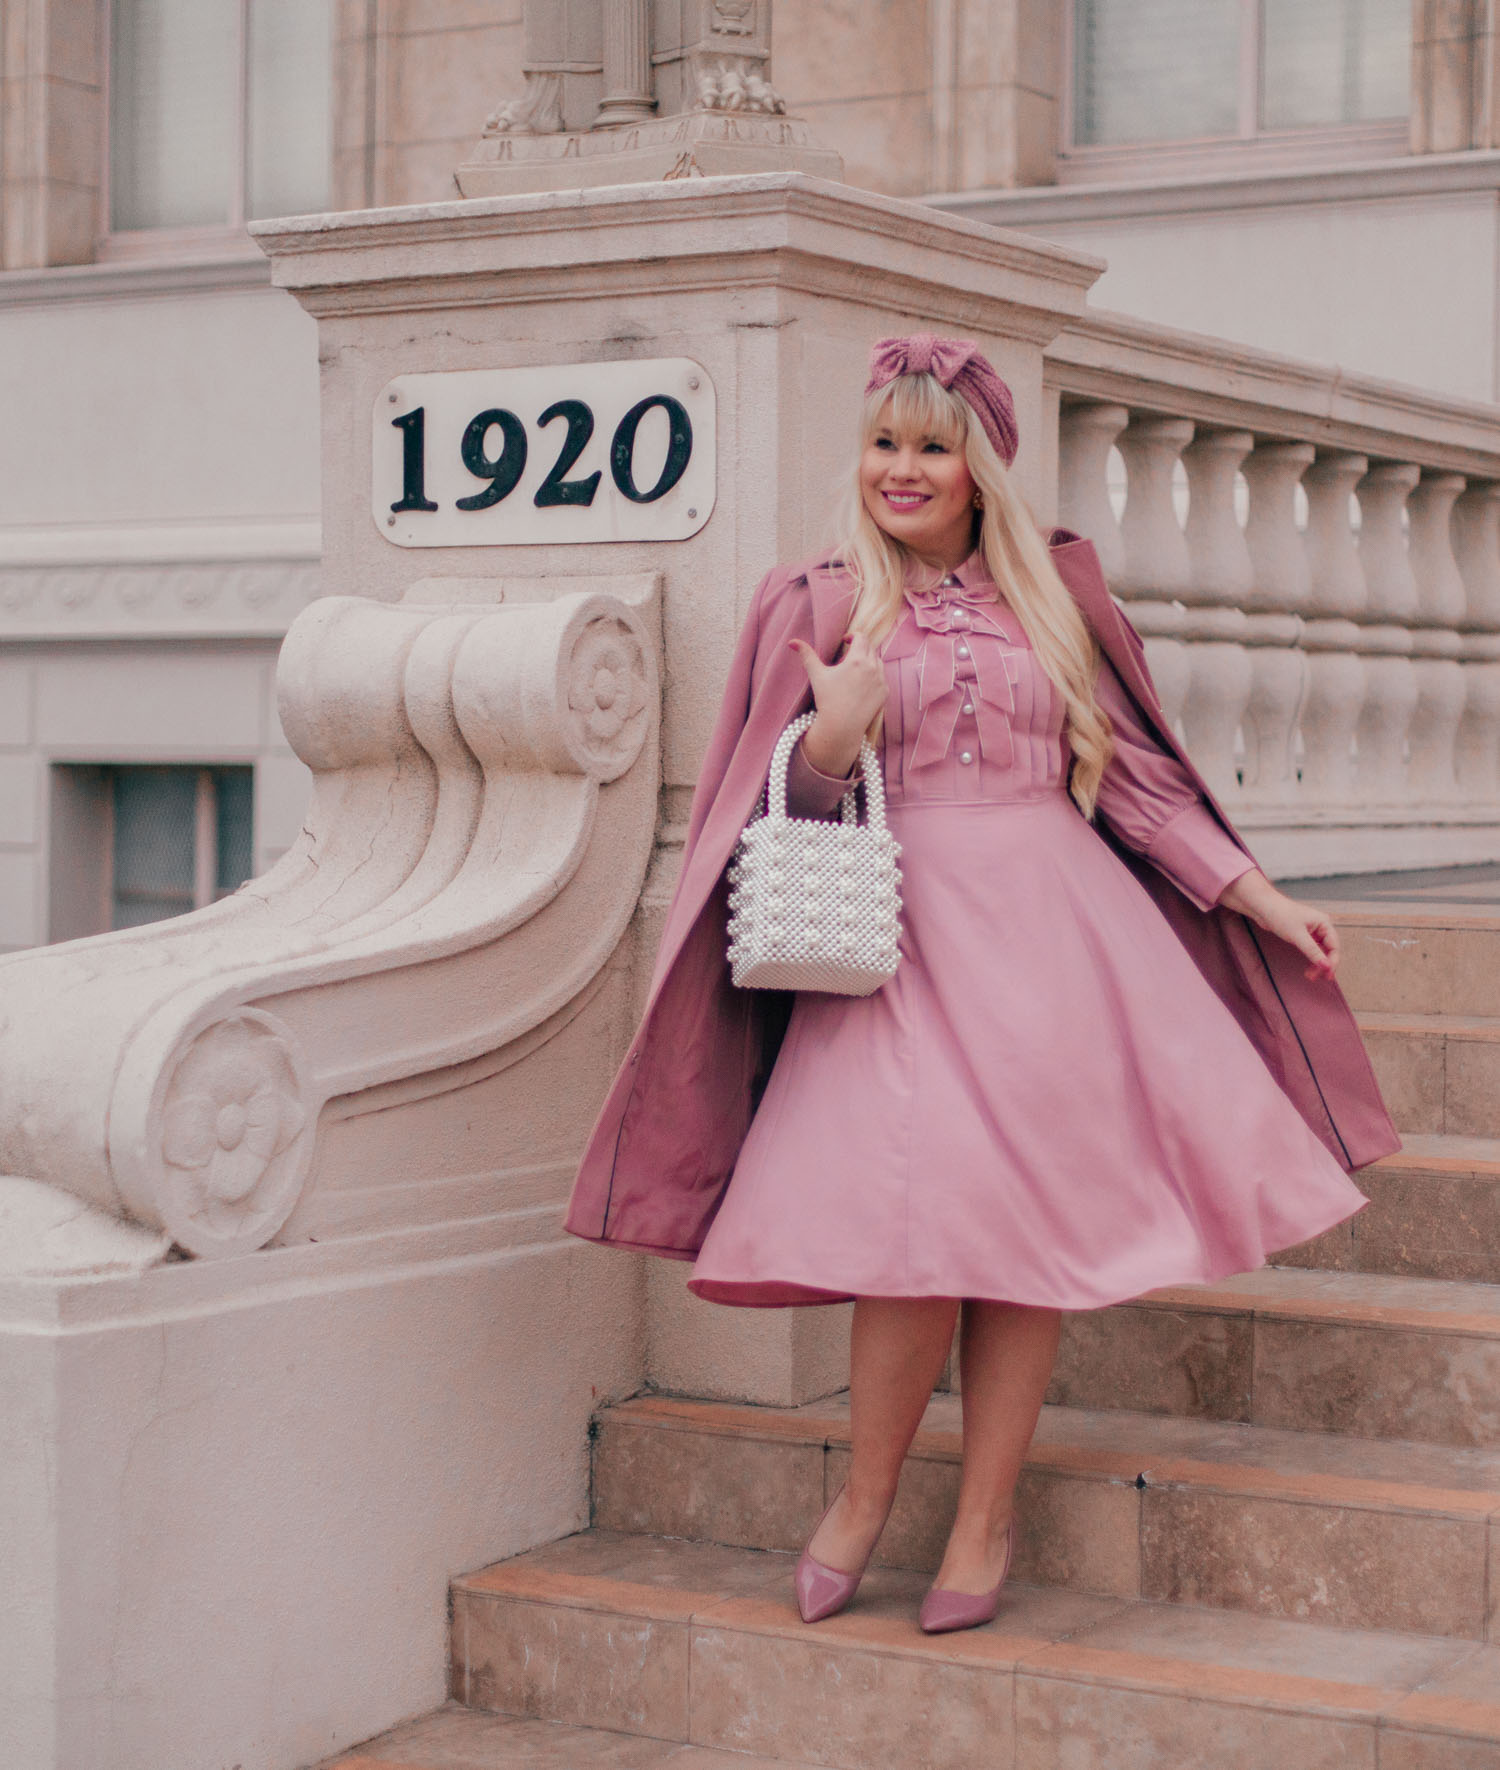 Elizabeth Hugen of Lizzie in Lace styles a pink monochrome outfit